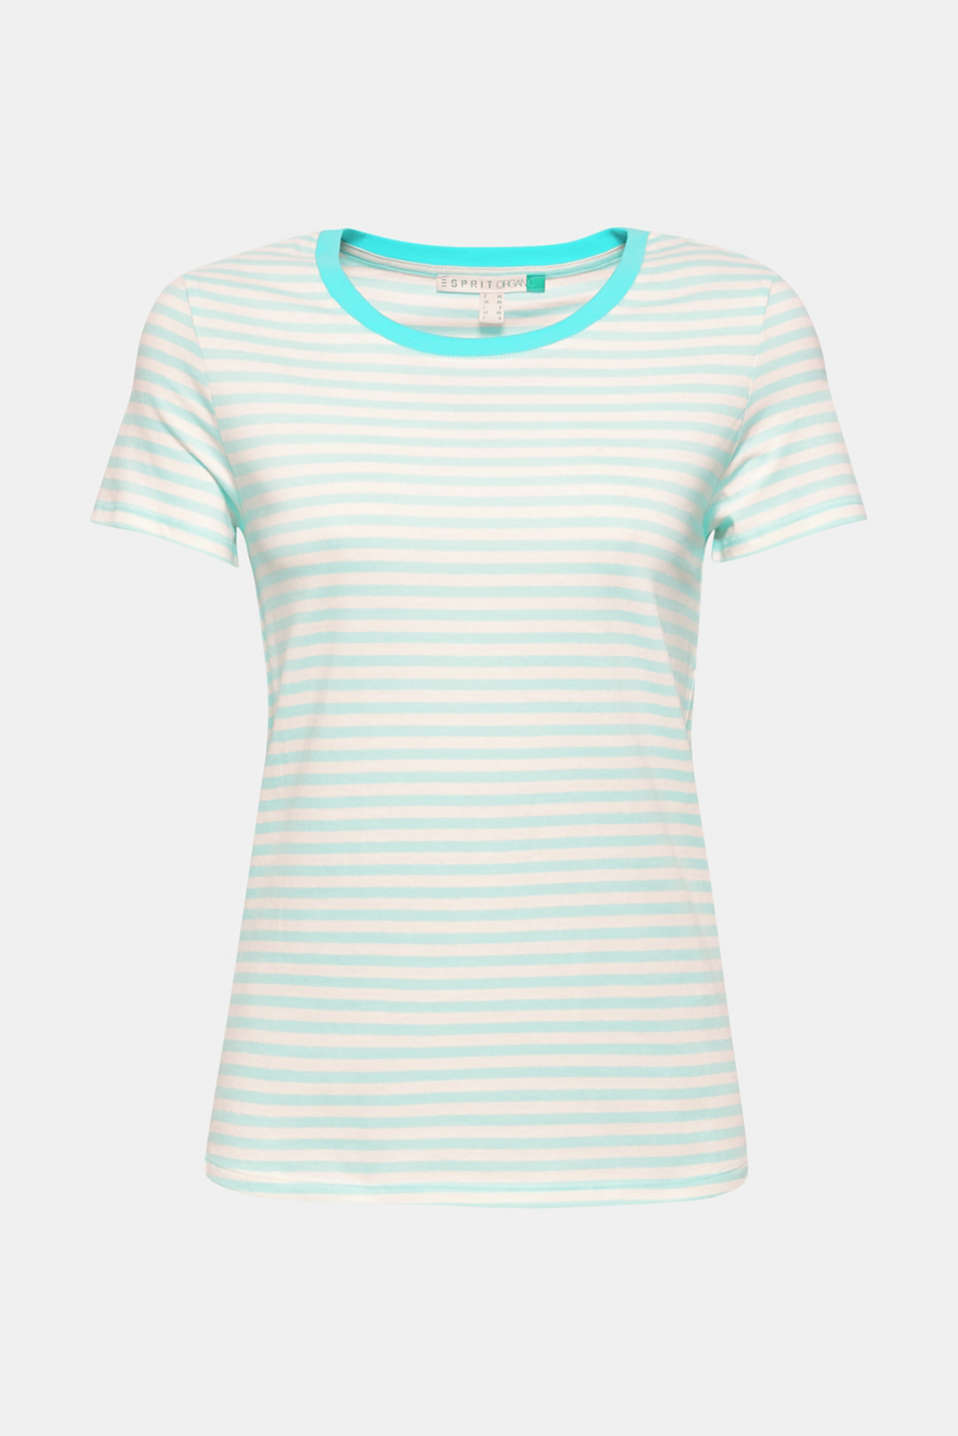 Striped T-shirt with a contrasting trim, 100% cotton, AQUA GREEN, detail image number 5